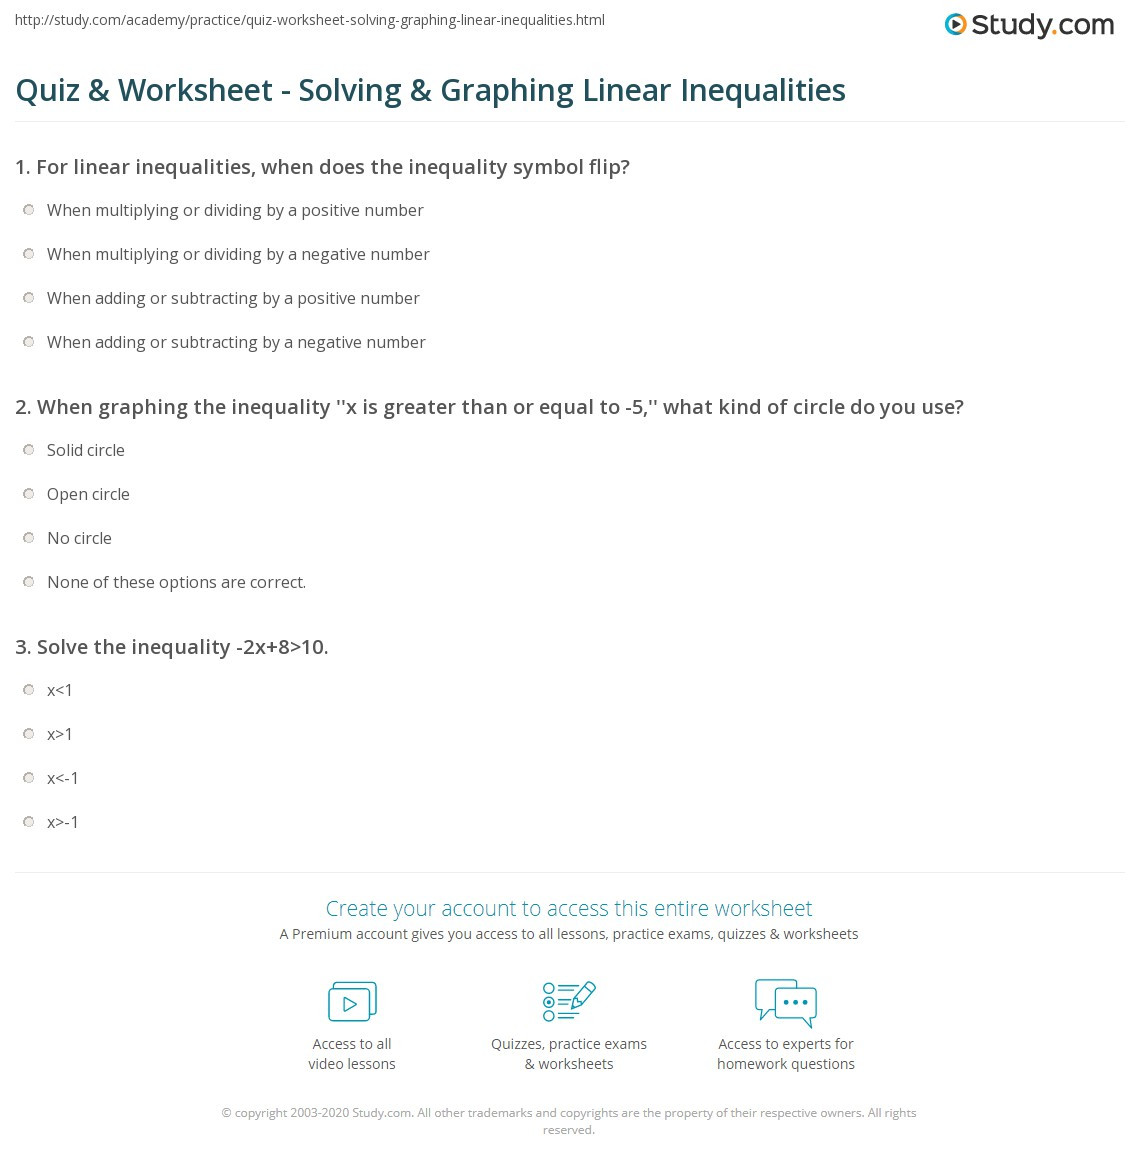 30 Graphing Linear Inequalities Worksheet Answers